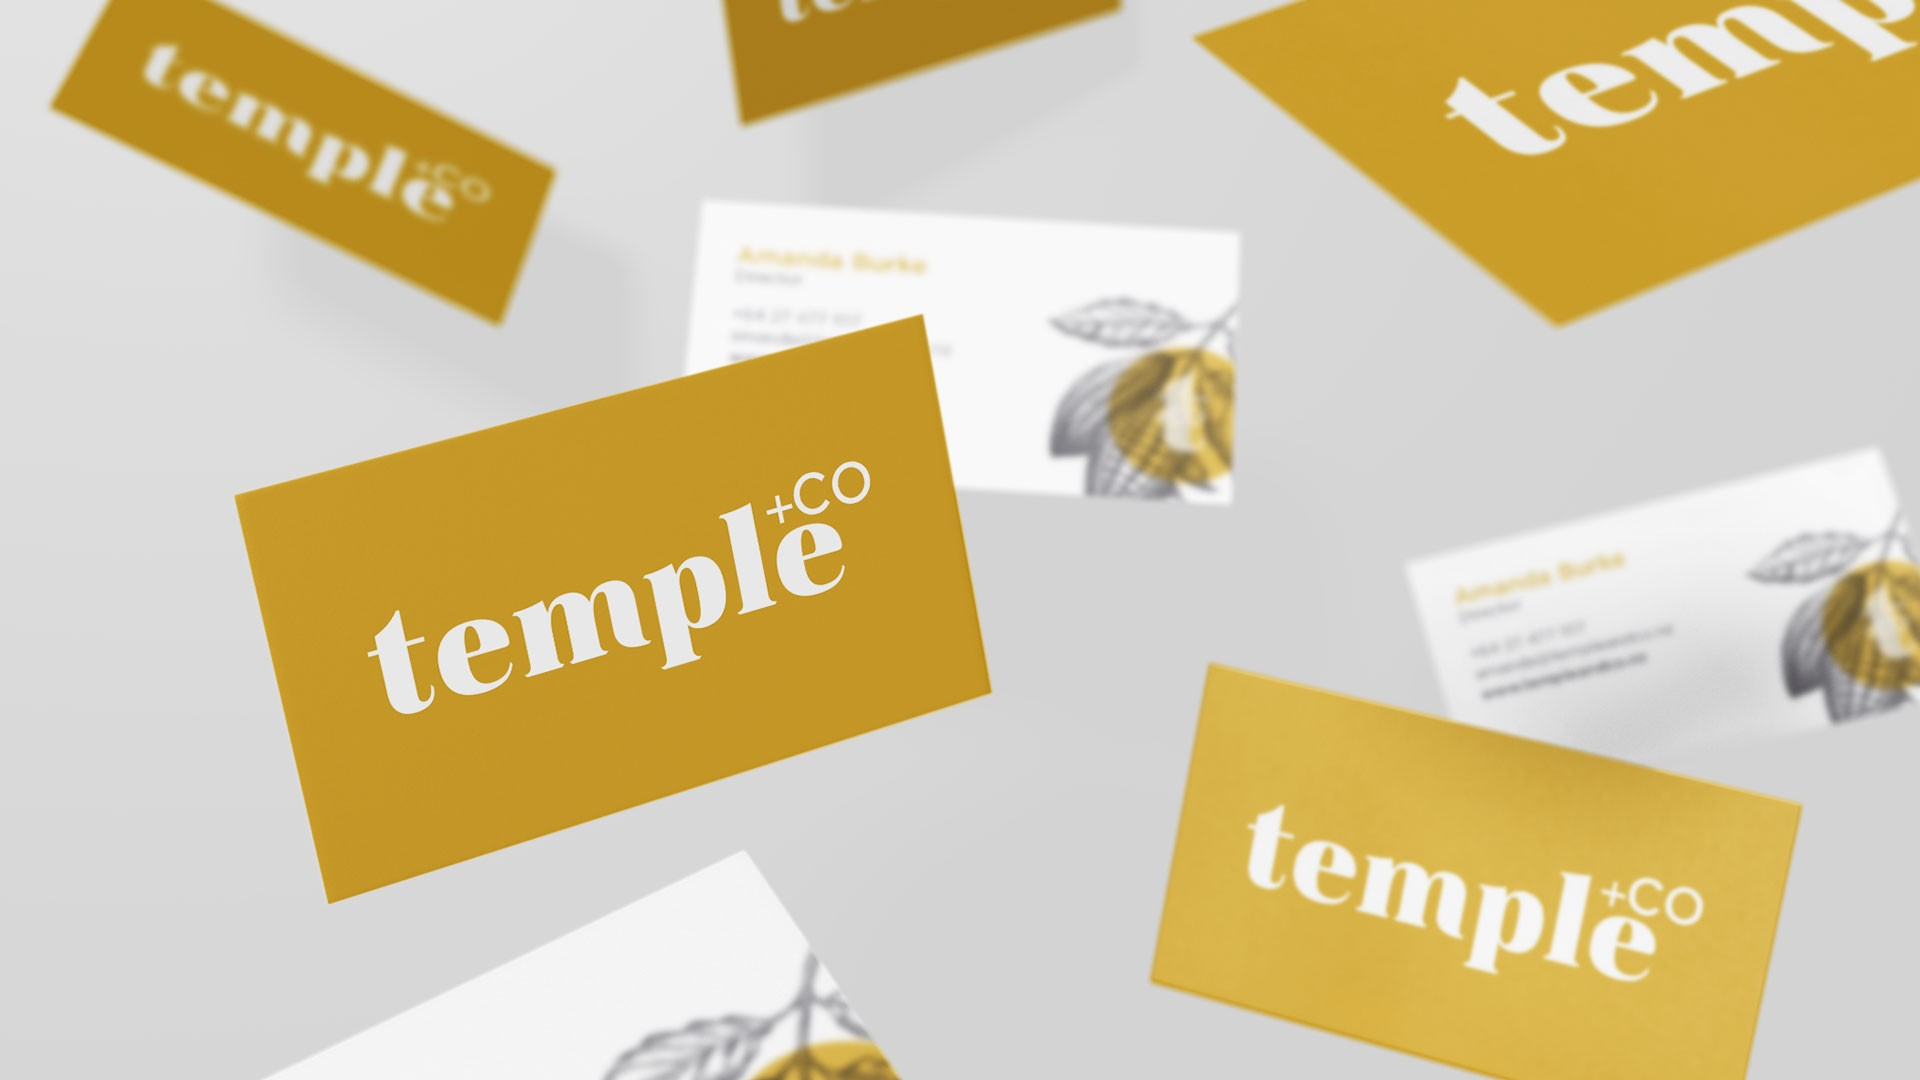 Temple+Co business cards